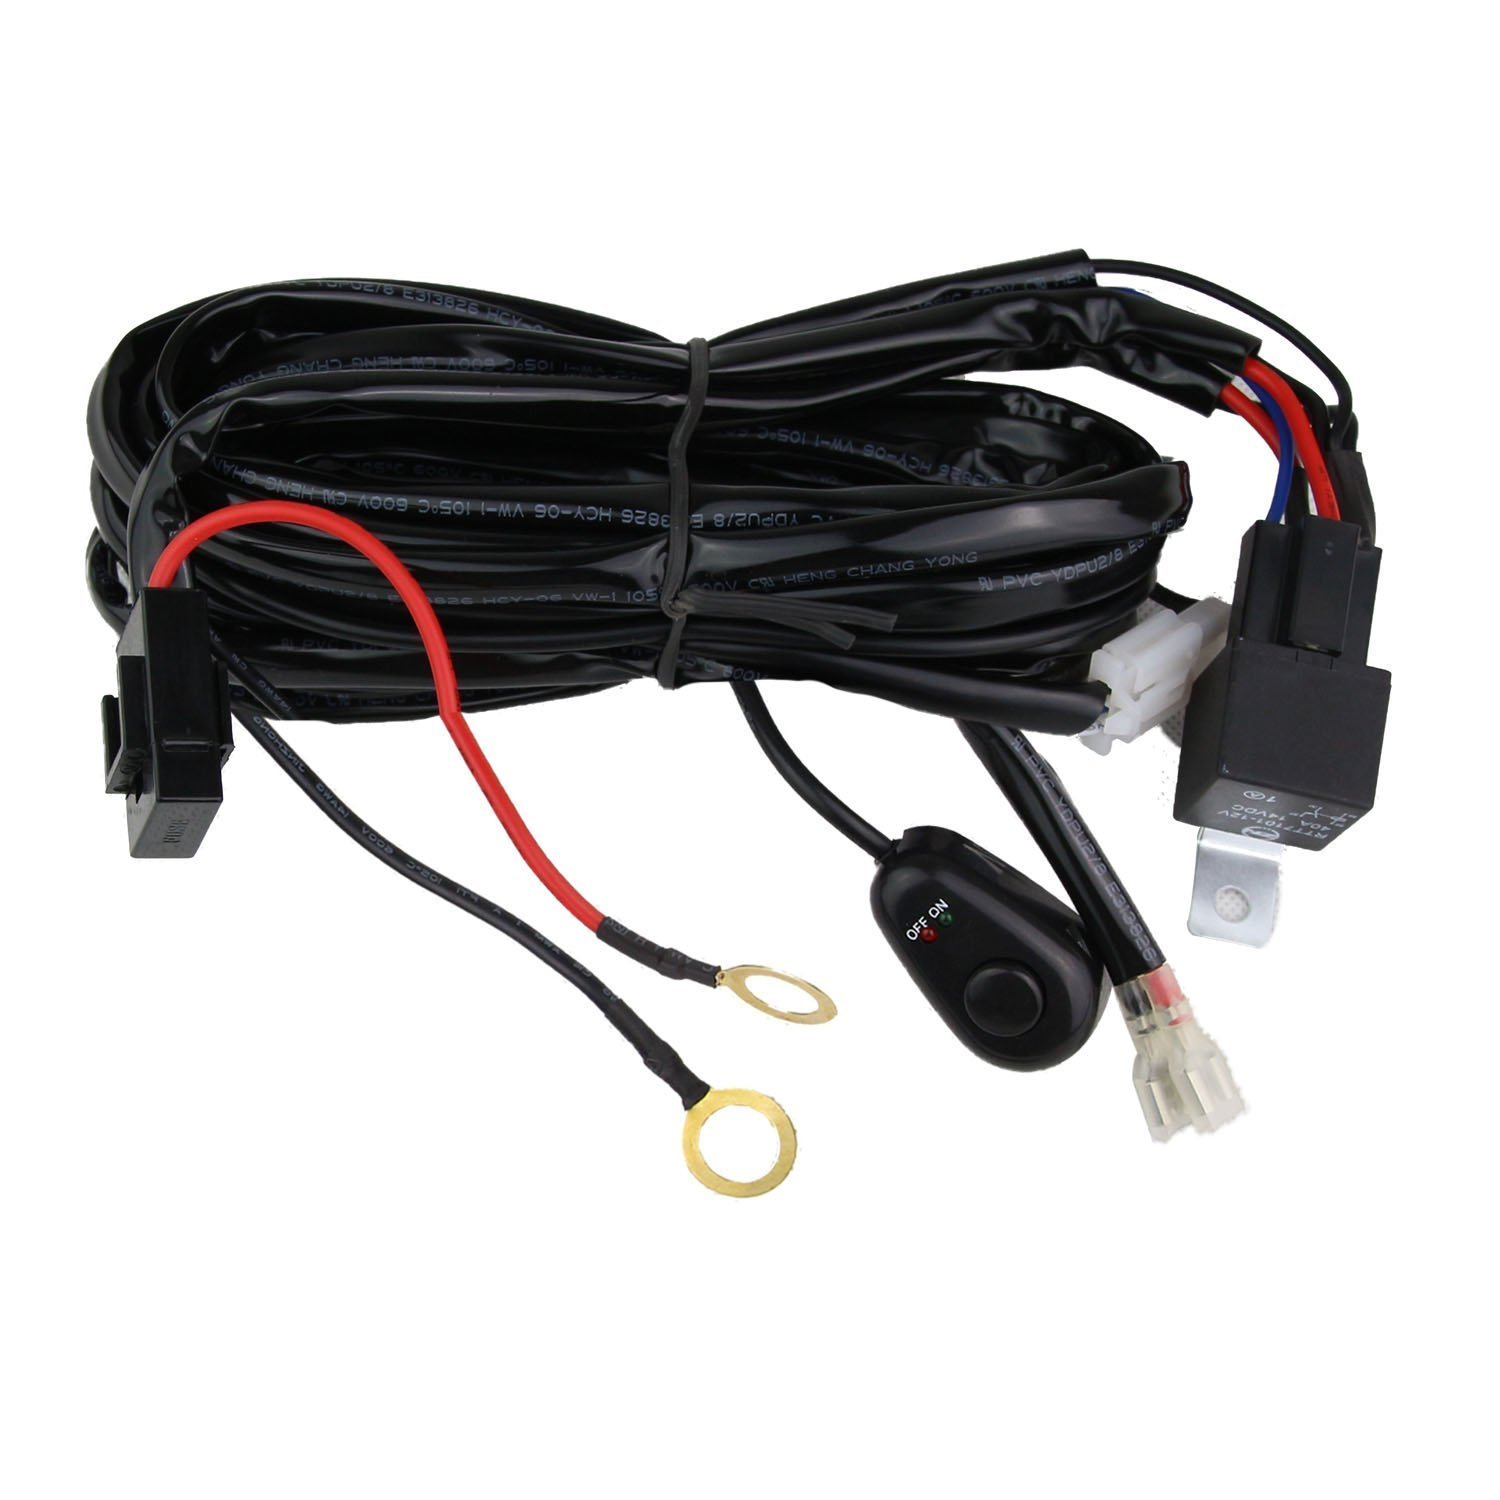 71xZ3MgxymL._SL1500_ amazon com wiring harnesses electrical automotive Wire Harness Assembly at soozxer.org